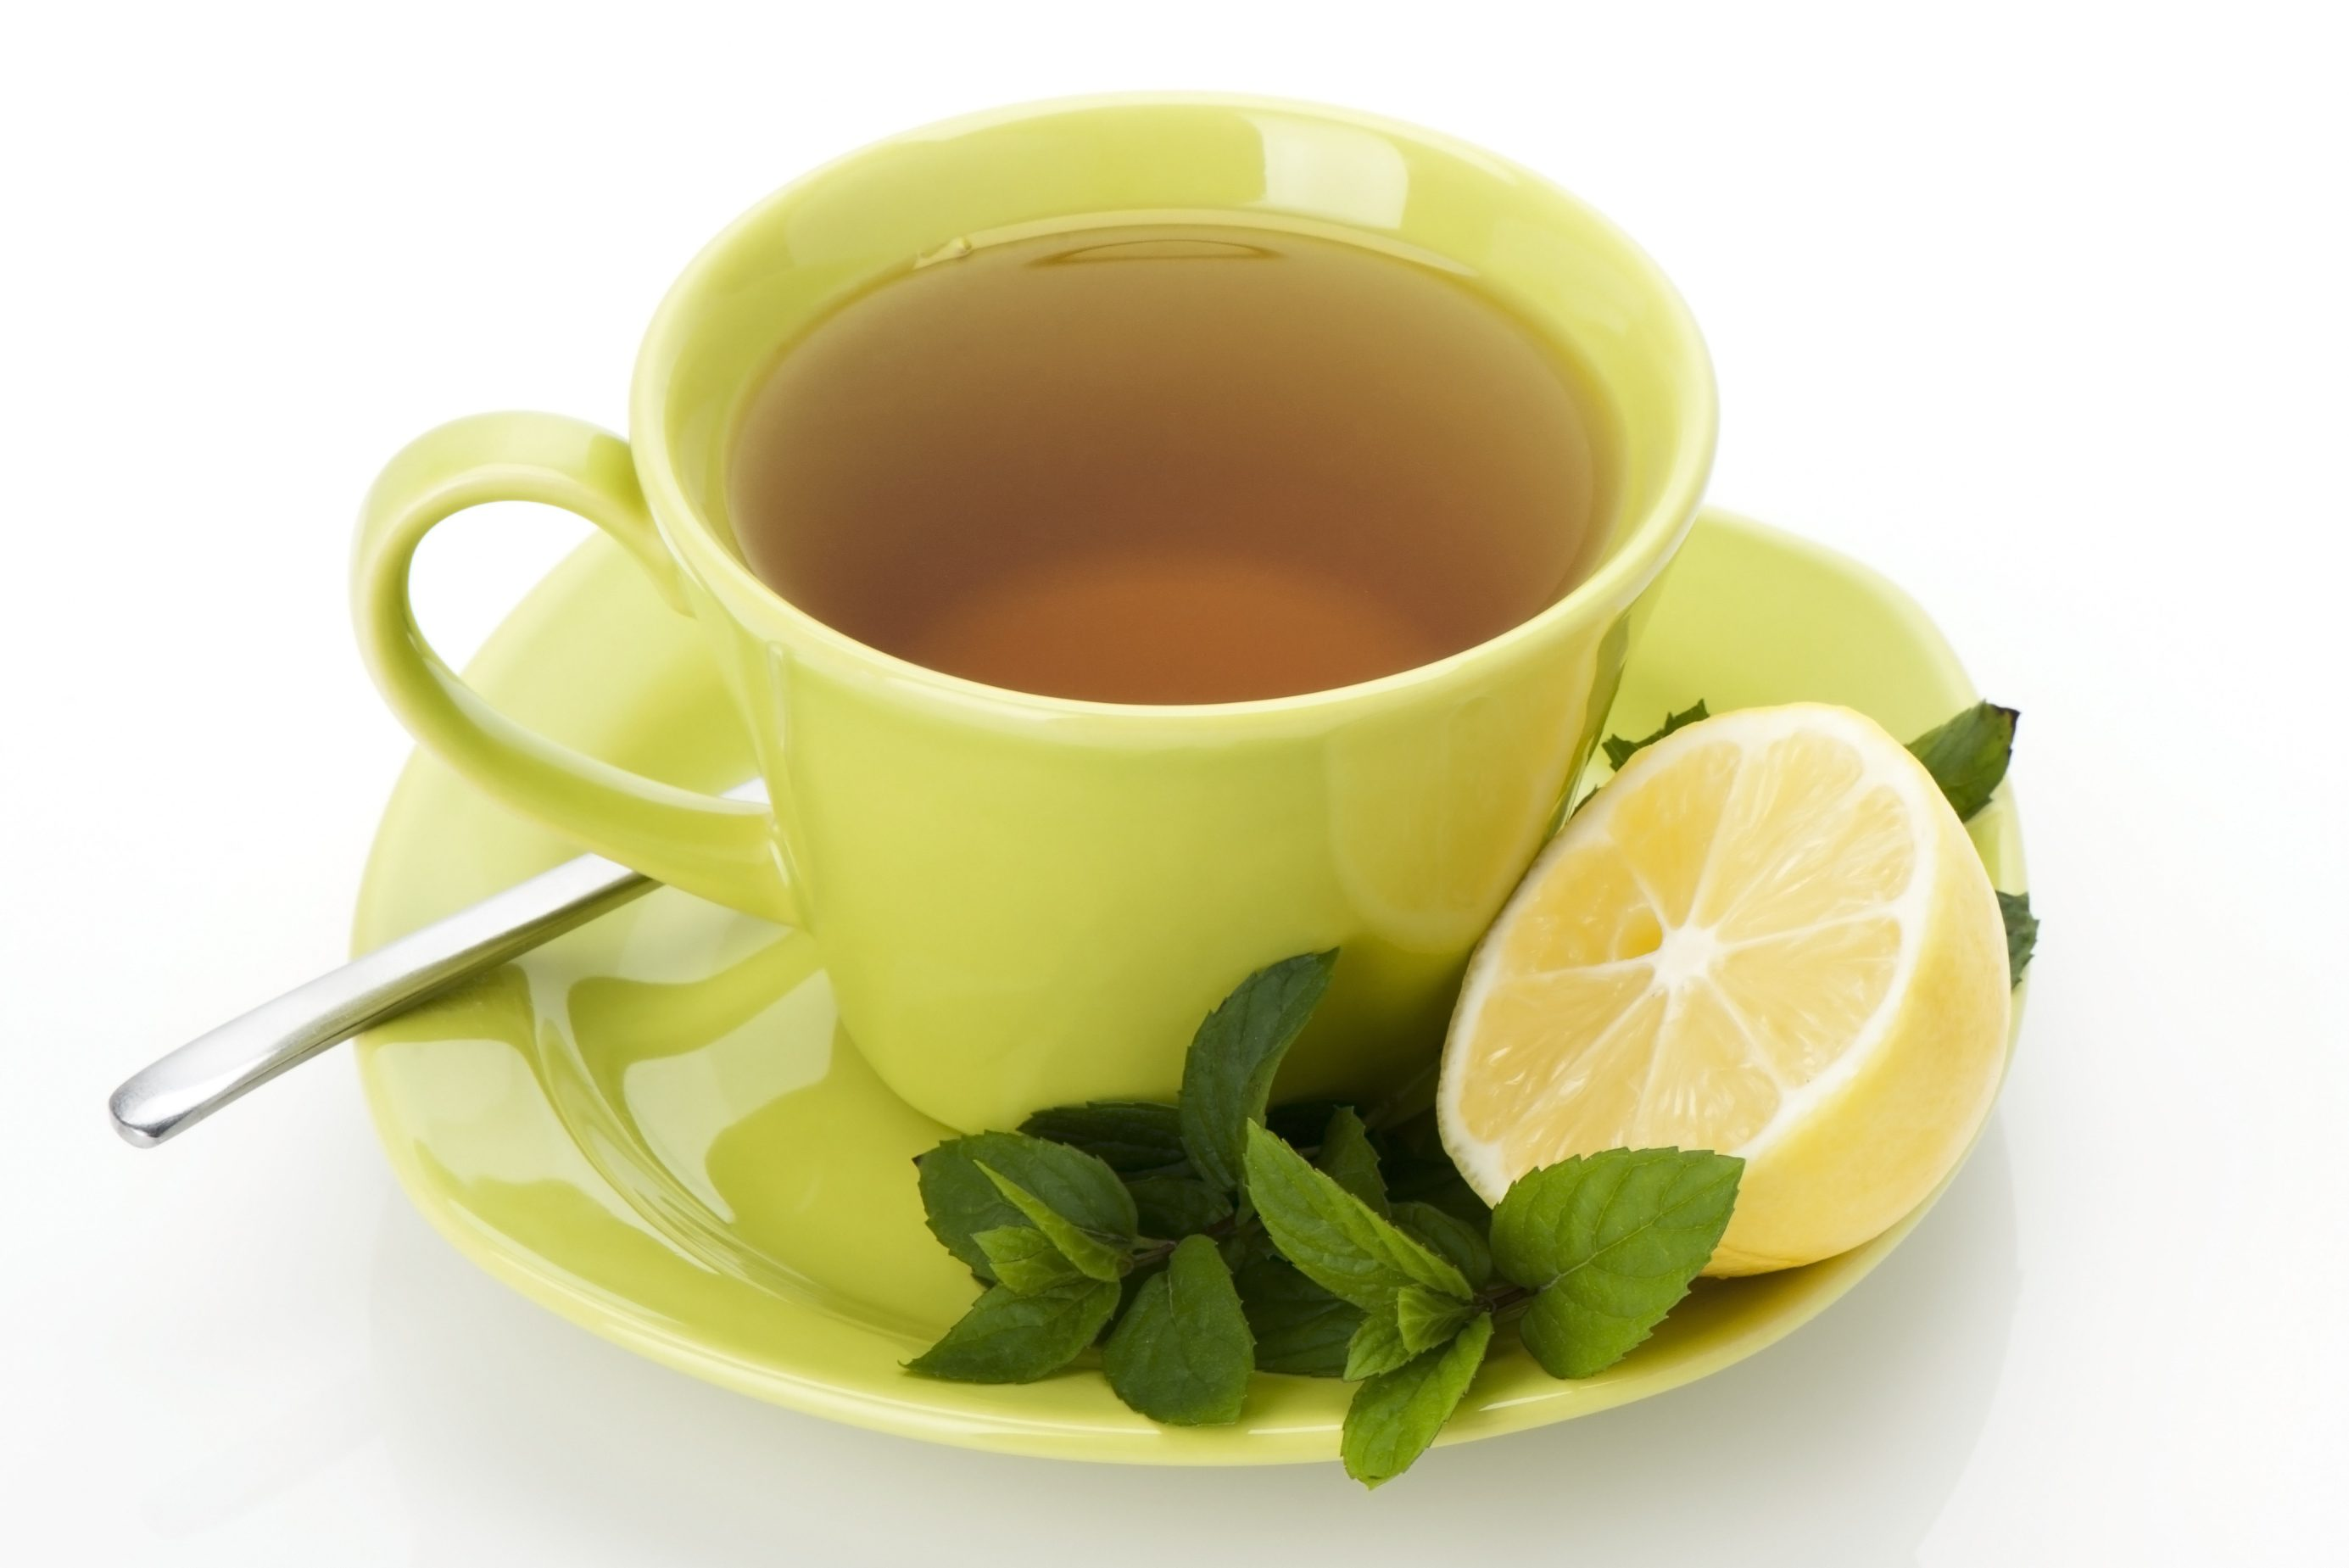 Does green tea have caffeine in it and if so how much?